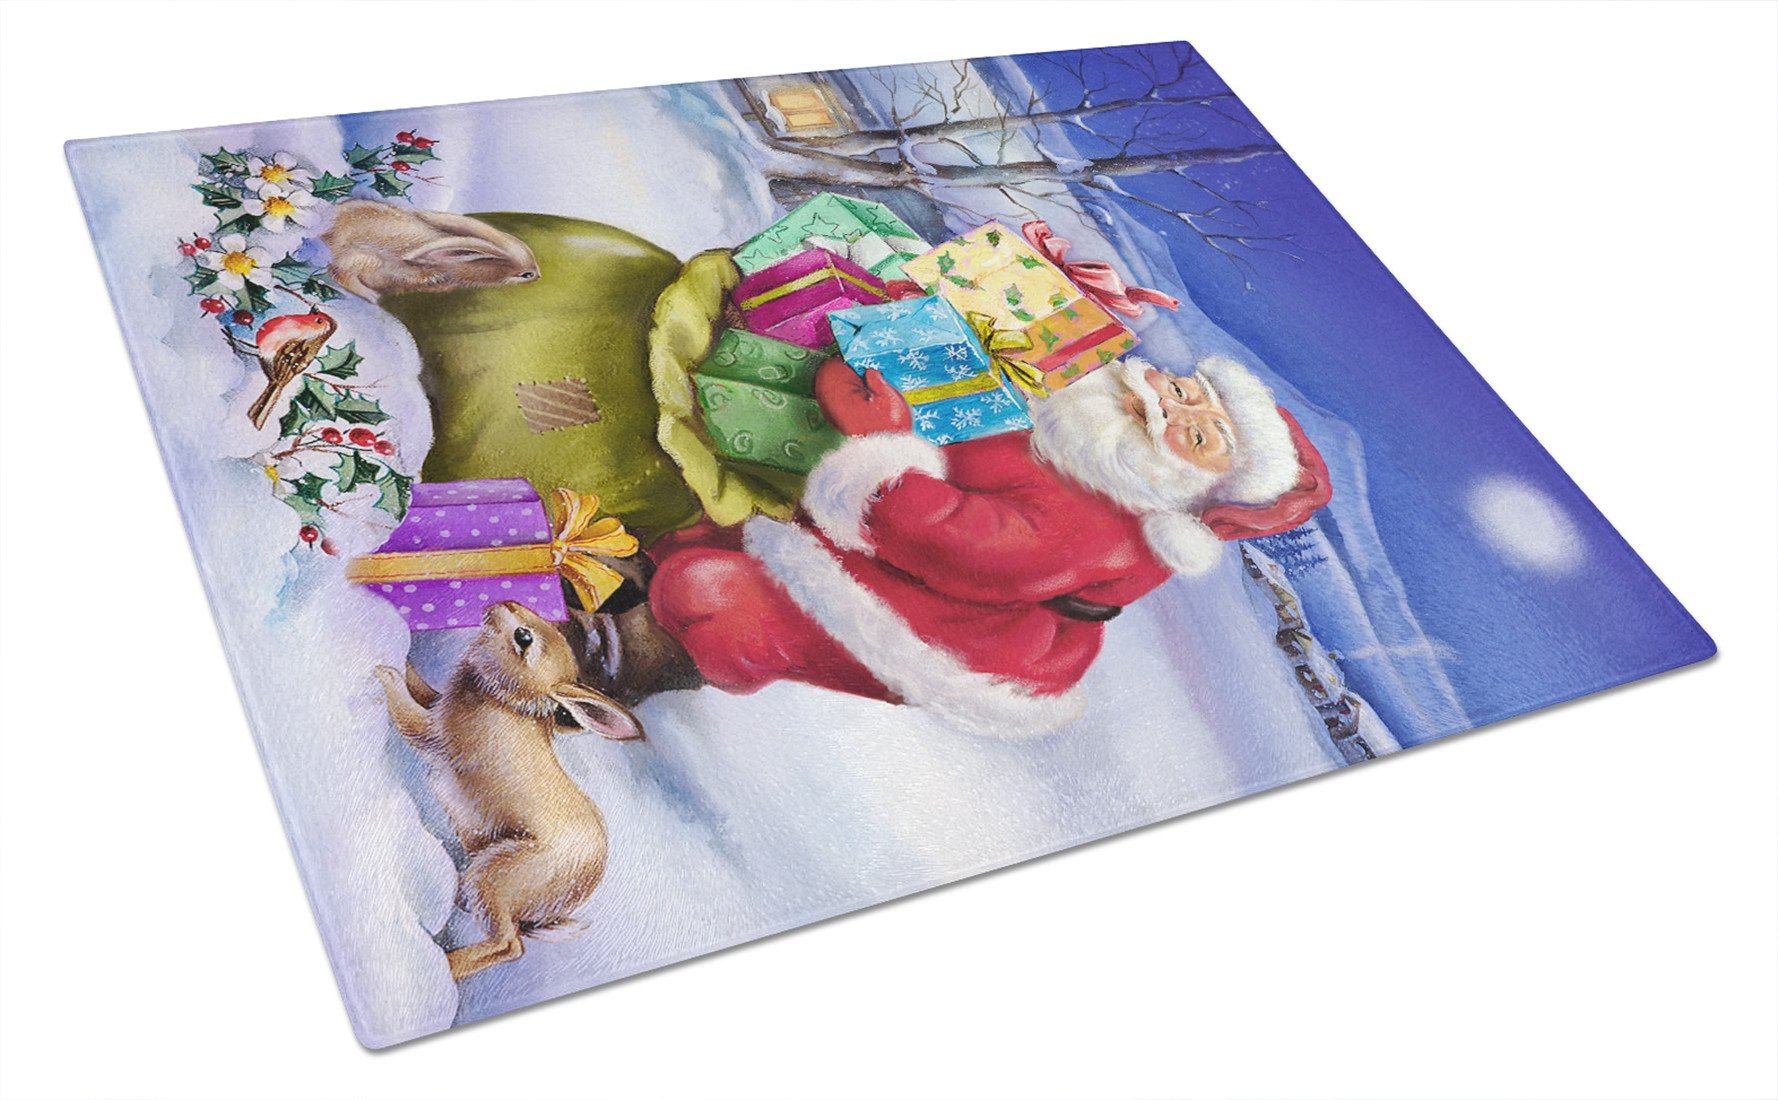 Christmas Santa Claus with Rabbits Glass Cutting Board Large APH6556LCB by Caroline's Treasures